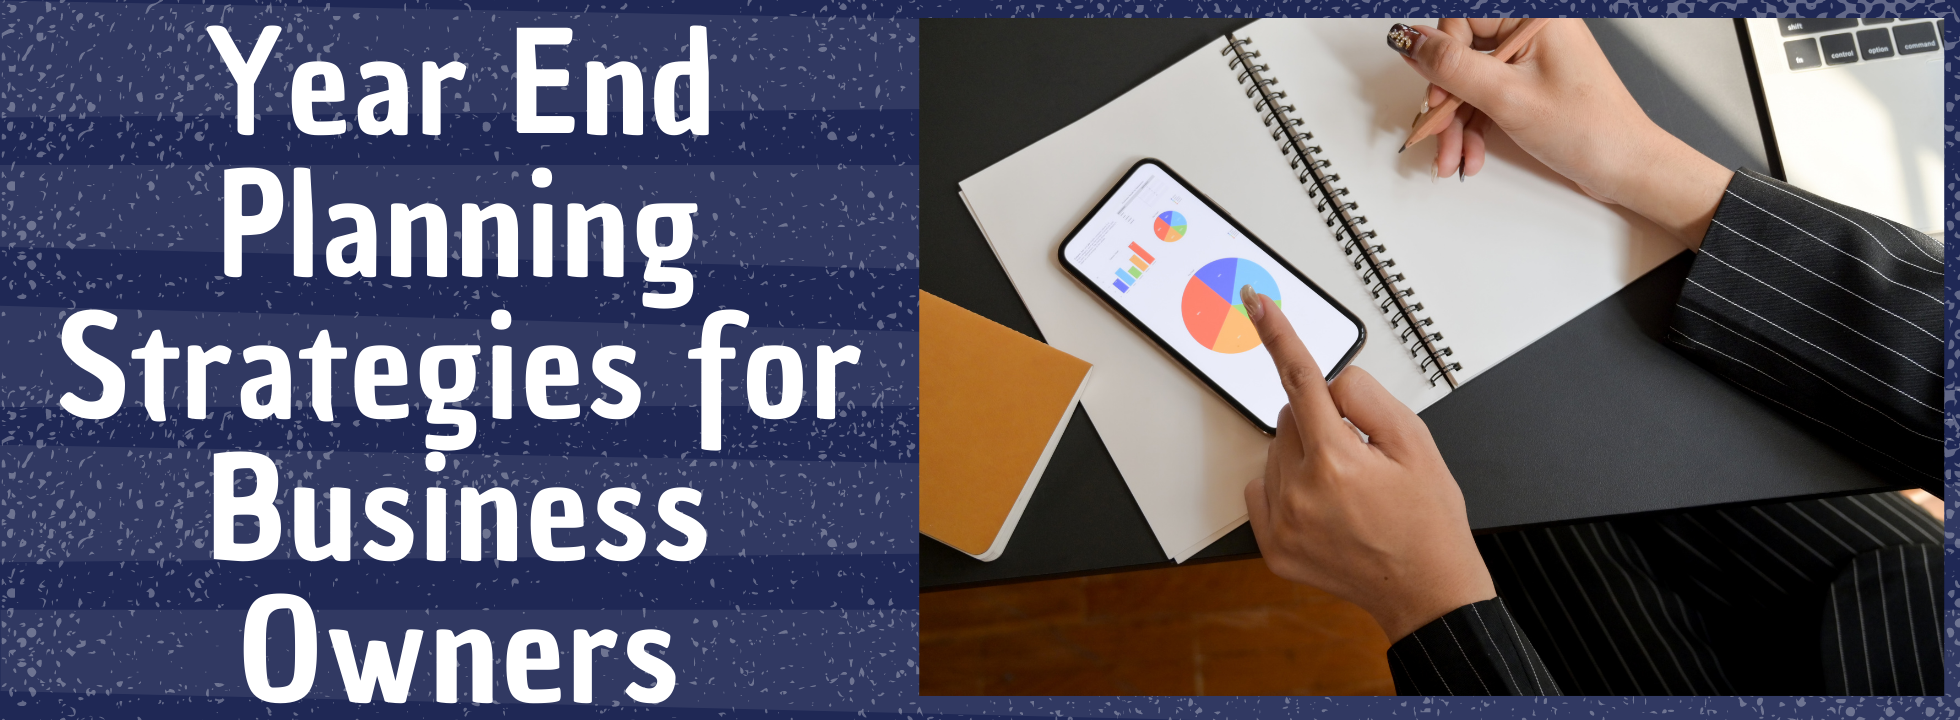 Year End Planning Strategies for Business Owners